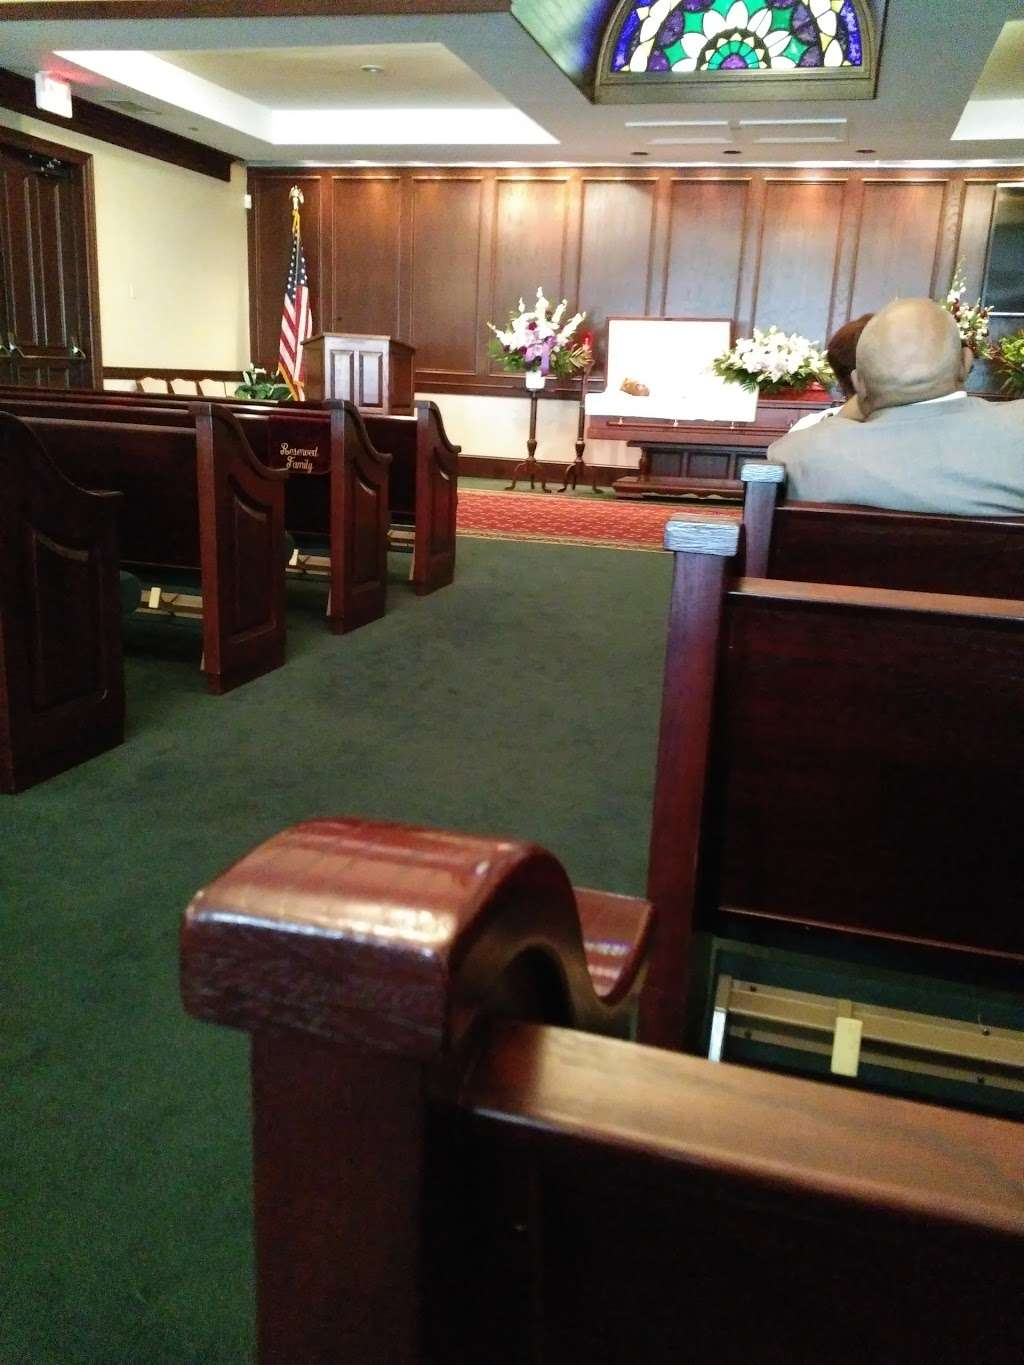 West Laurel Hill Funeral Home - funeral home  | Photo 4 of 6 | Address: 225 Belmont Ave, Bala Cynwyd, PA 19004, USA | Phone: (610) 668-9900